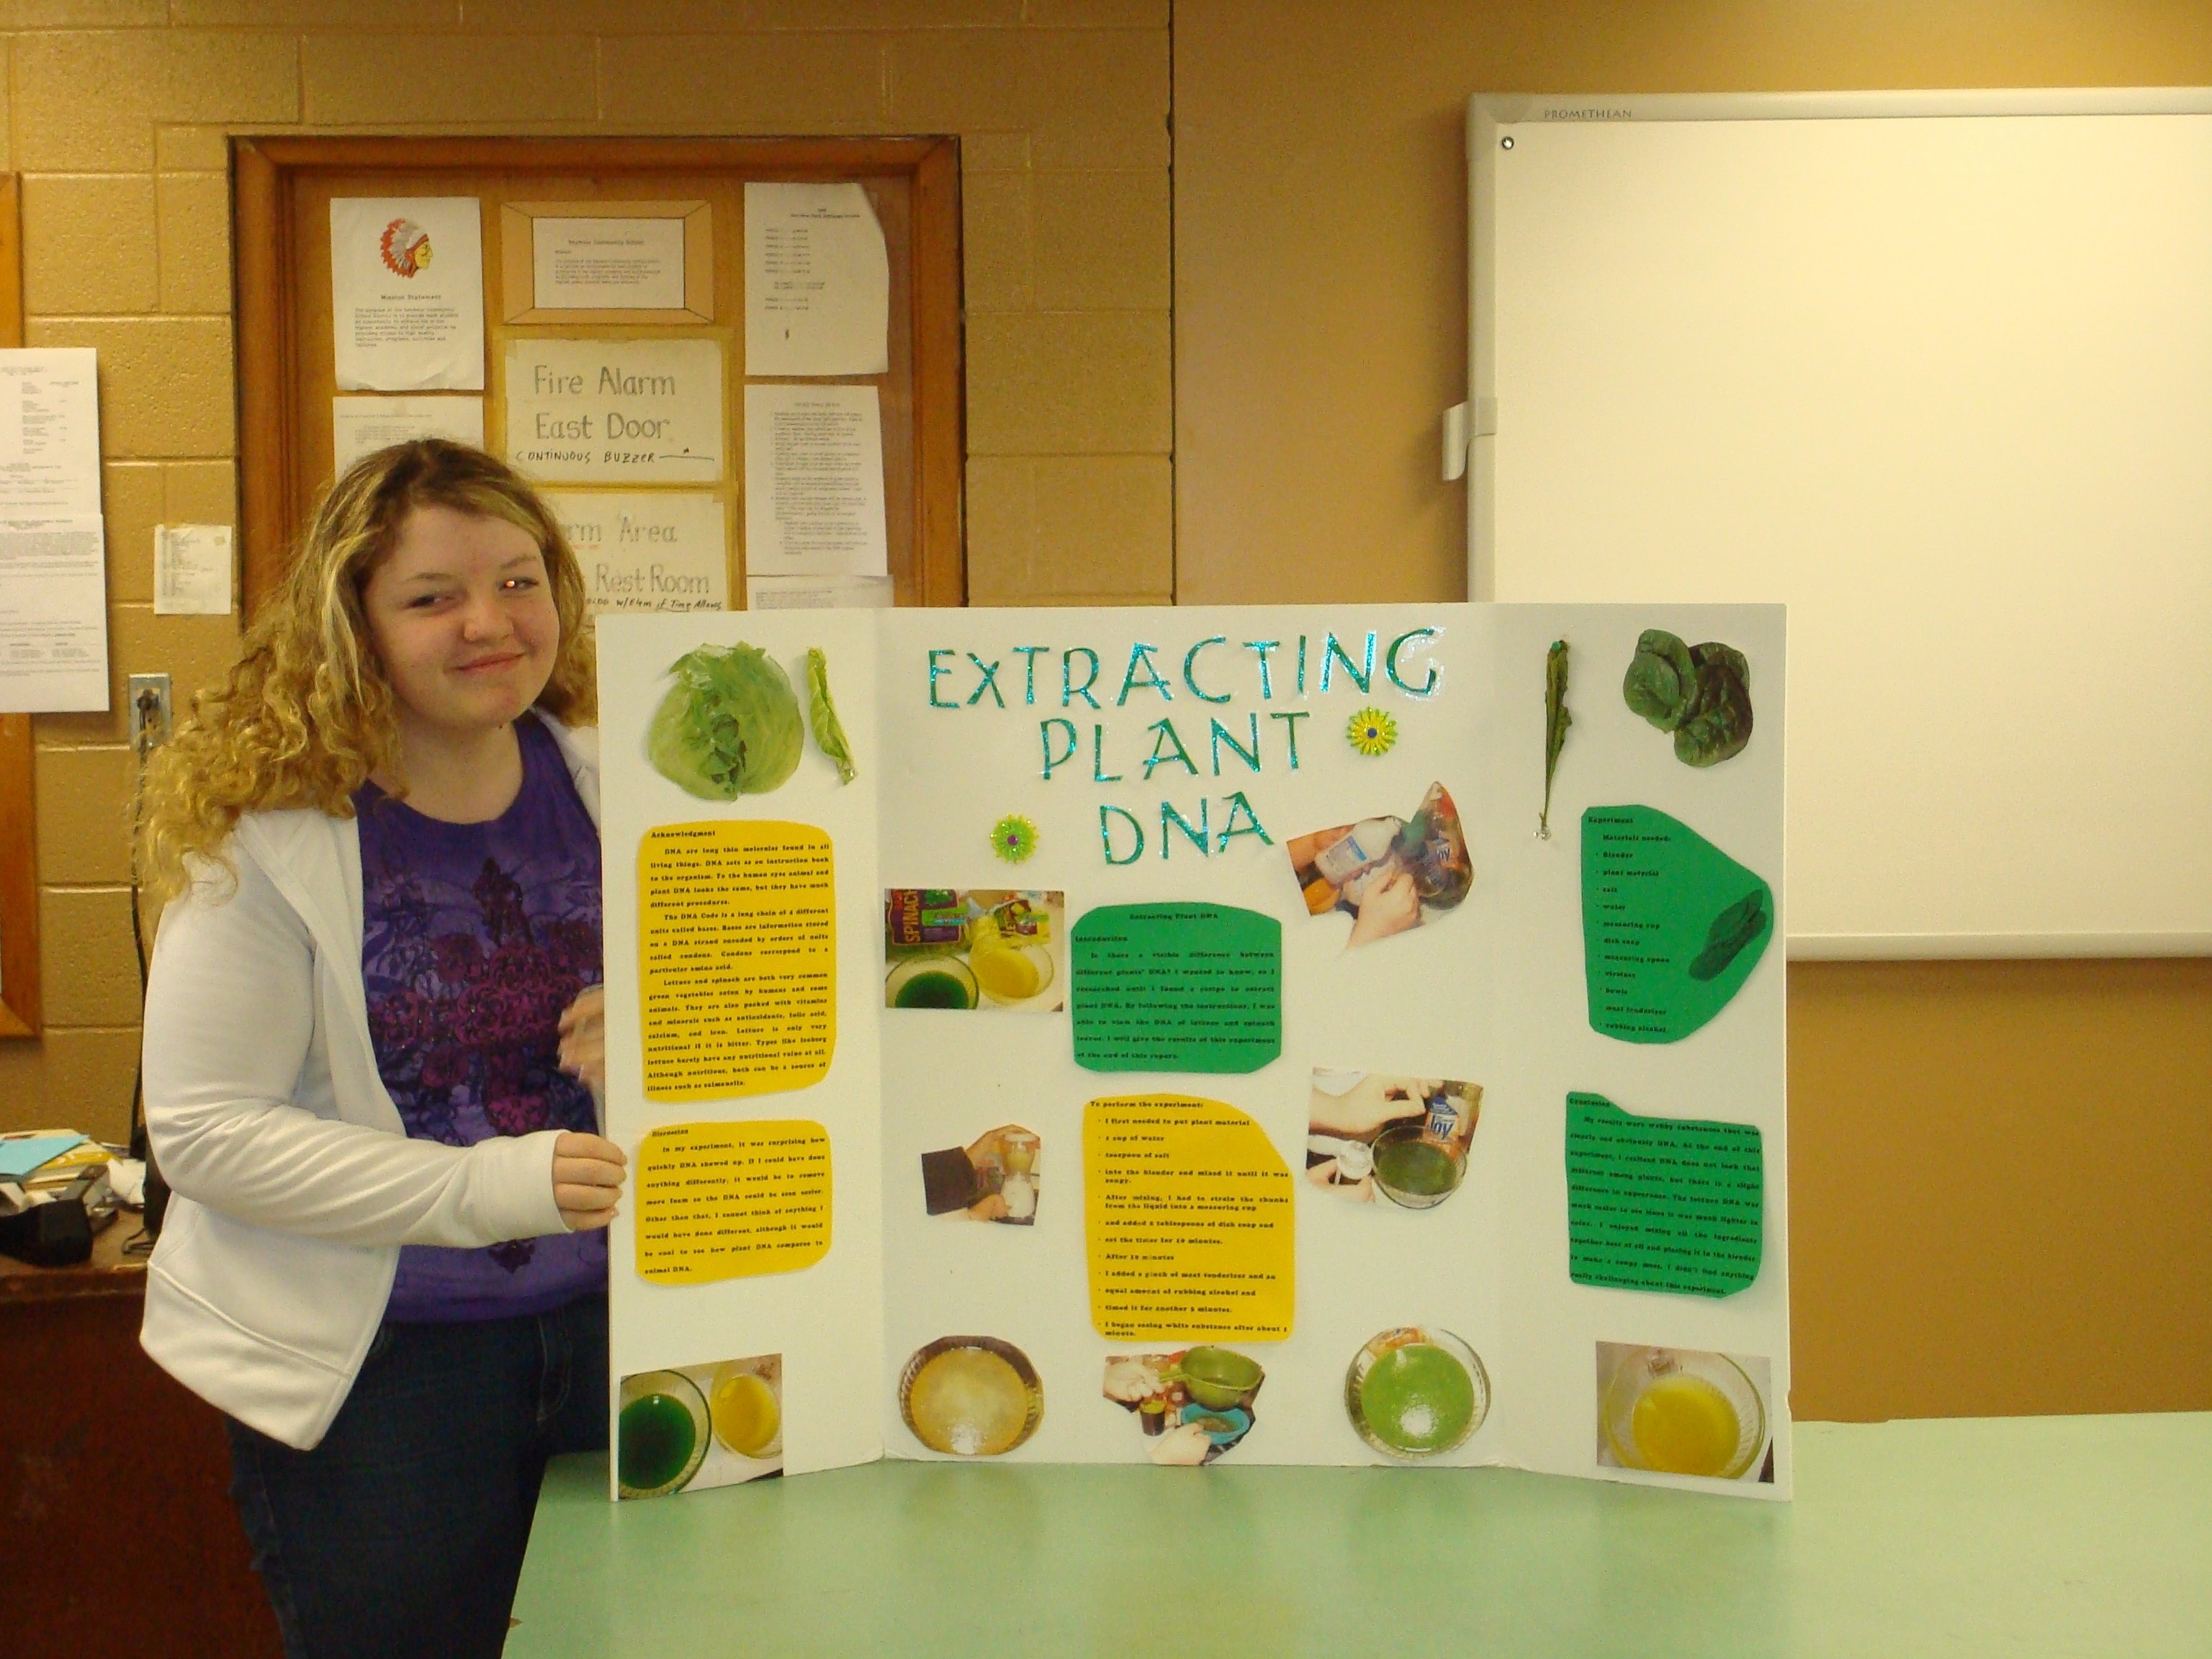 10 Great Science Project Ideas For 3Rd Graders easy science fair projects for 3rd graders college paper help 10 2020